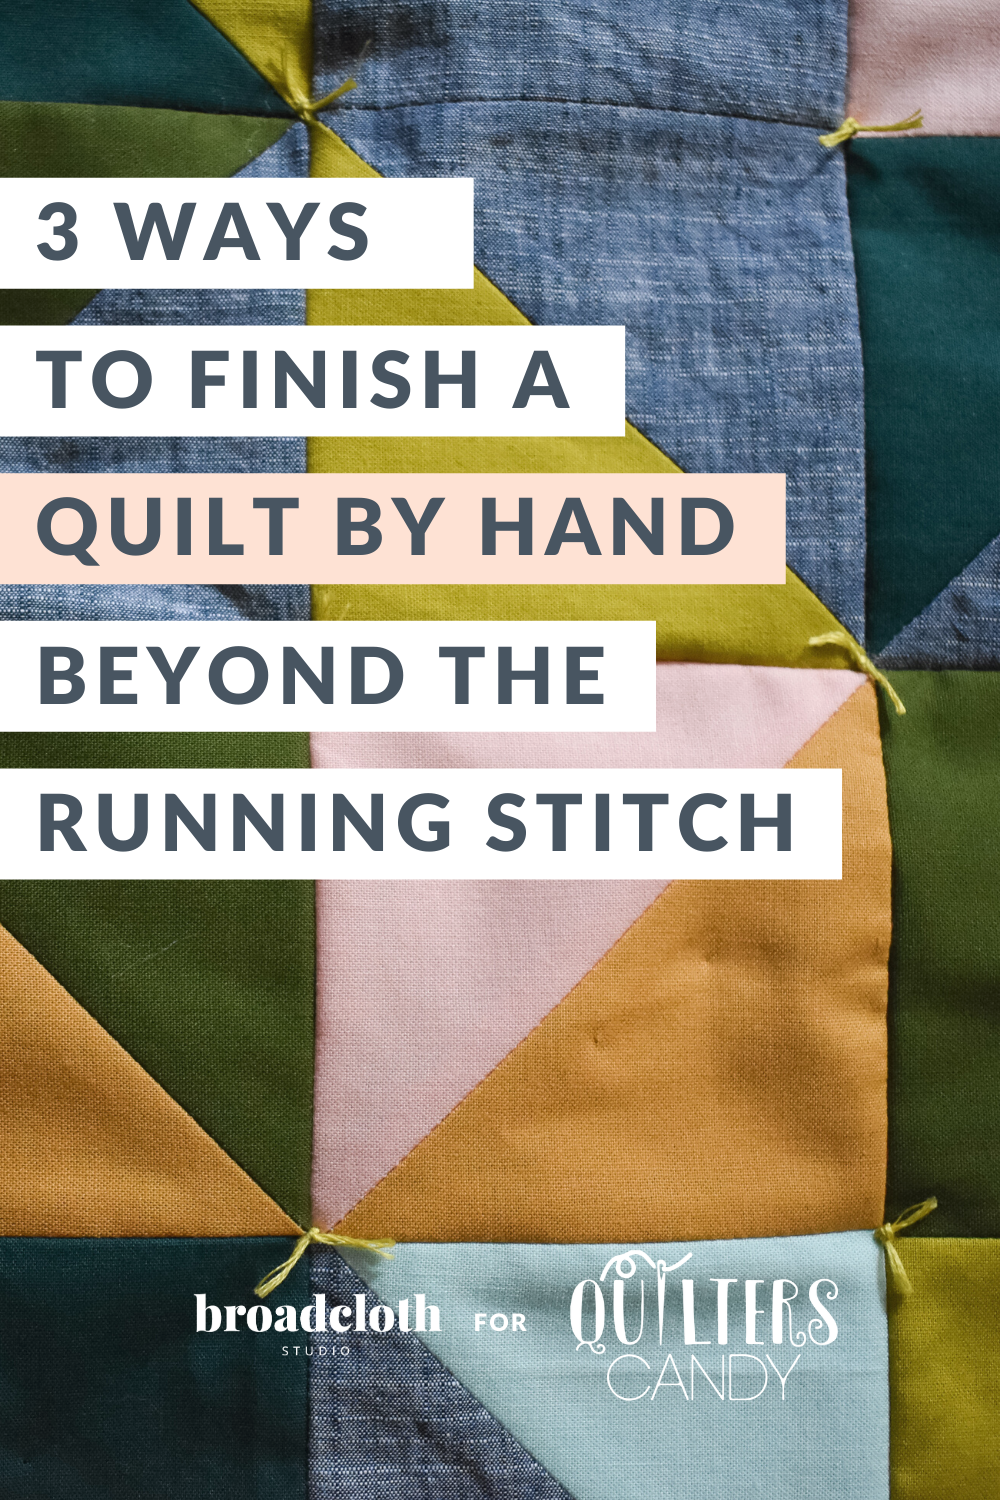 3 ways to finish a quilt by hand